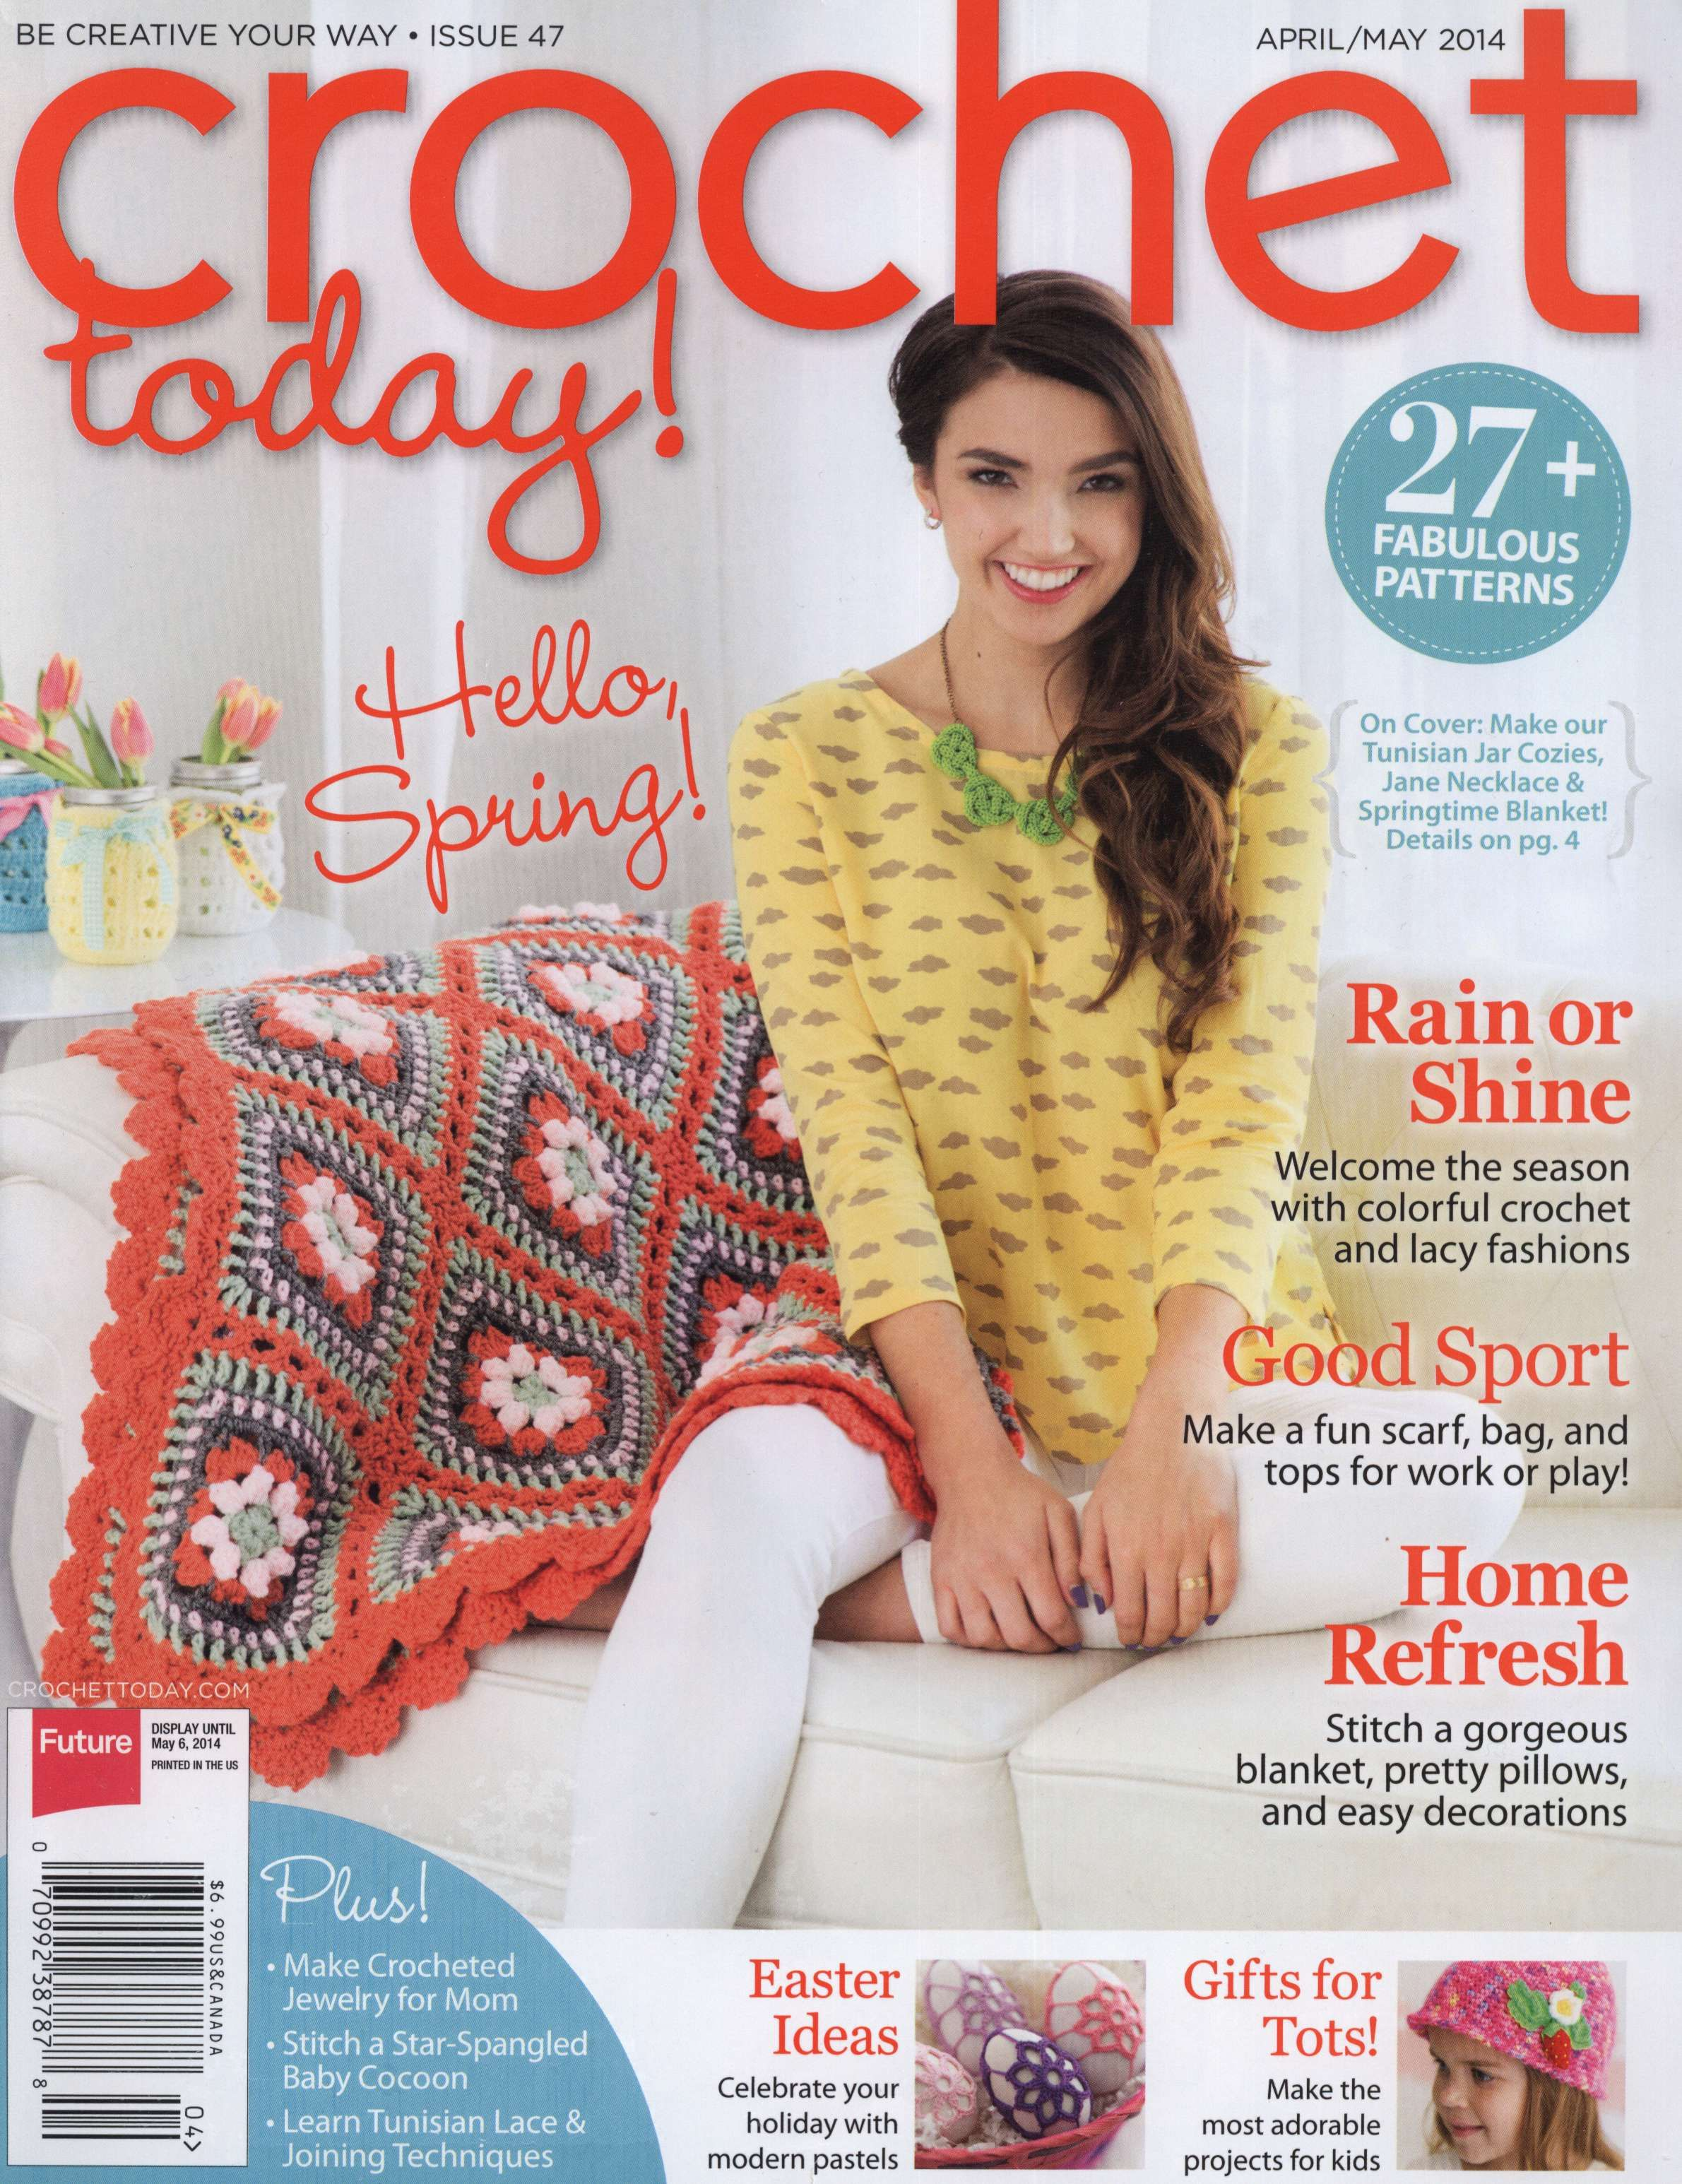 Crochet today today issue 47 aprmay 2014 magazine crochet today today issue 47 aprmay 2014 bankloansurffo Image collections